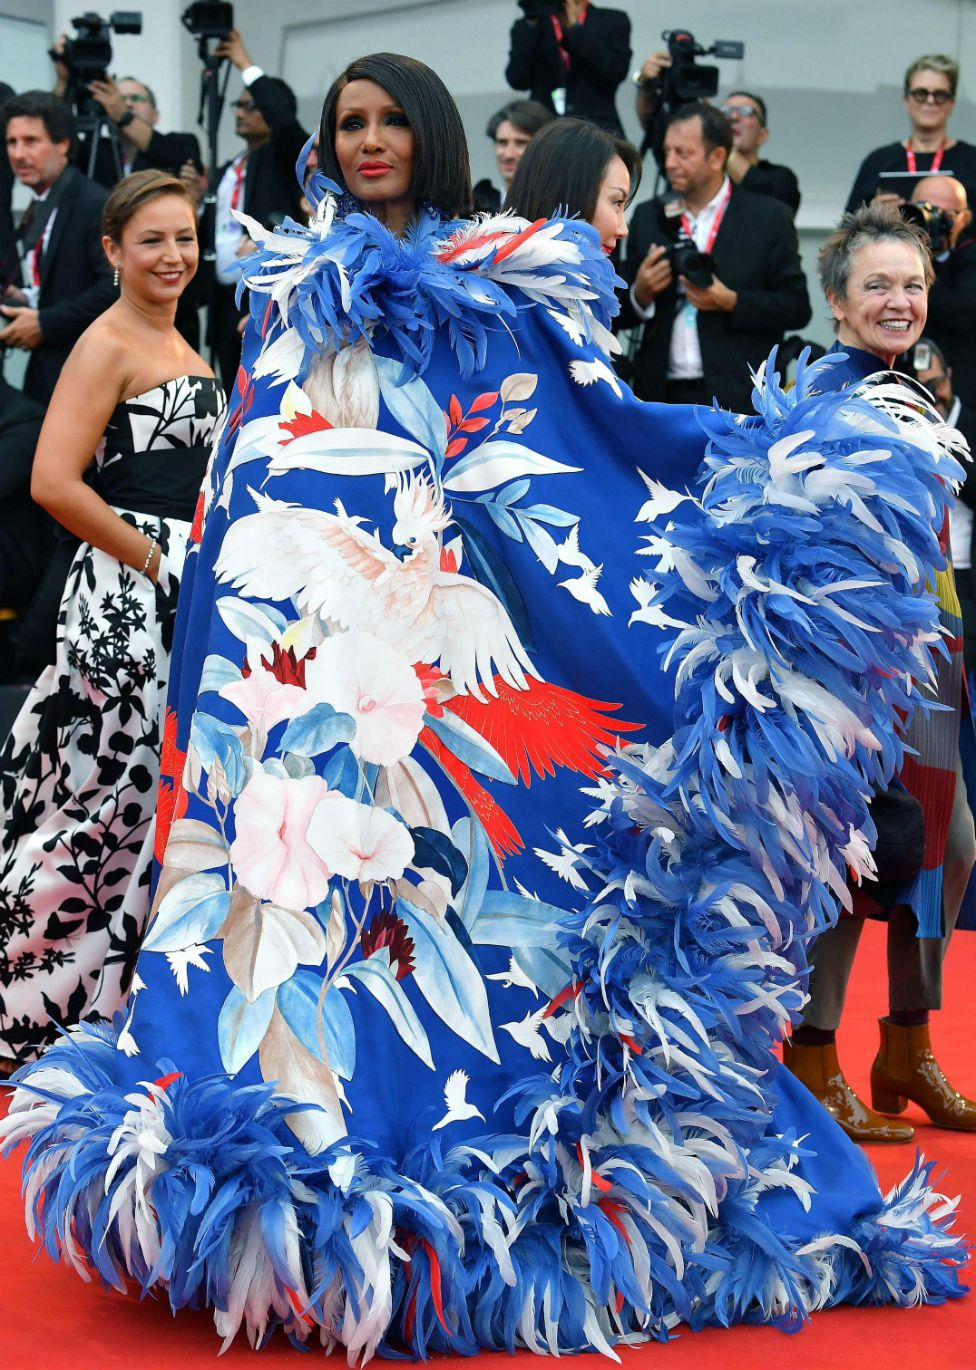 Iman wears a flamboyant dress featuring a red, white and blue pattern and feathers.